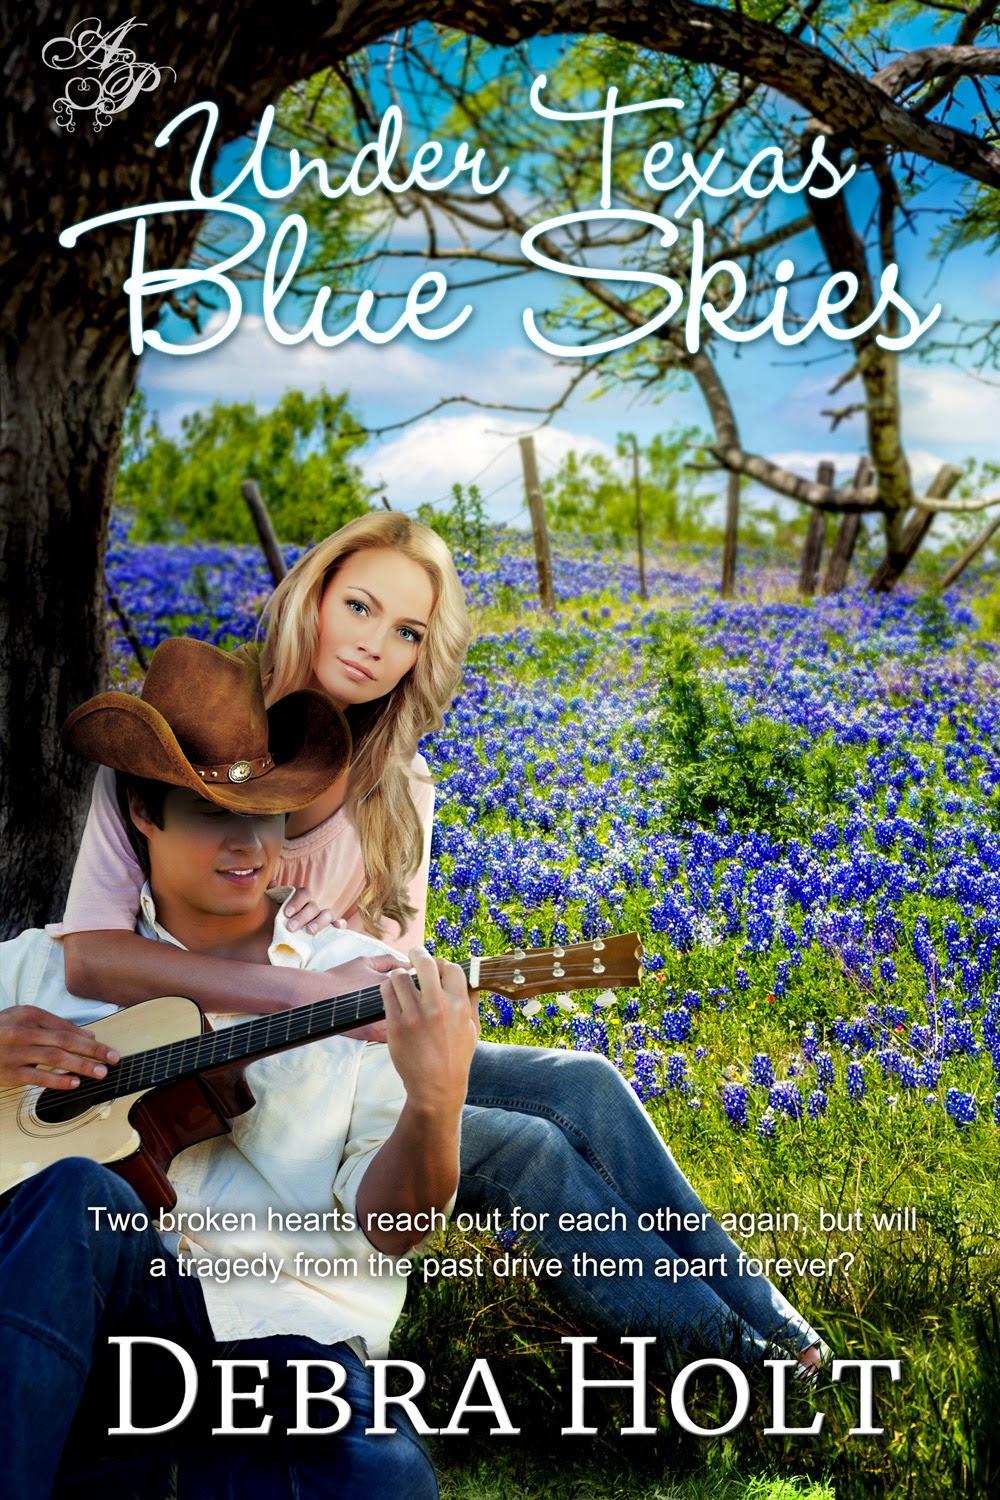 Book excerpt for contemporary romance novel Under Texas Blue Skies by Debra Holt